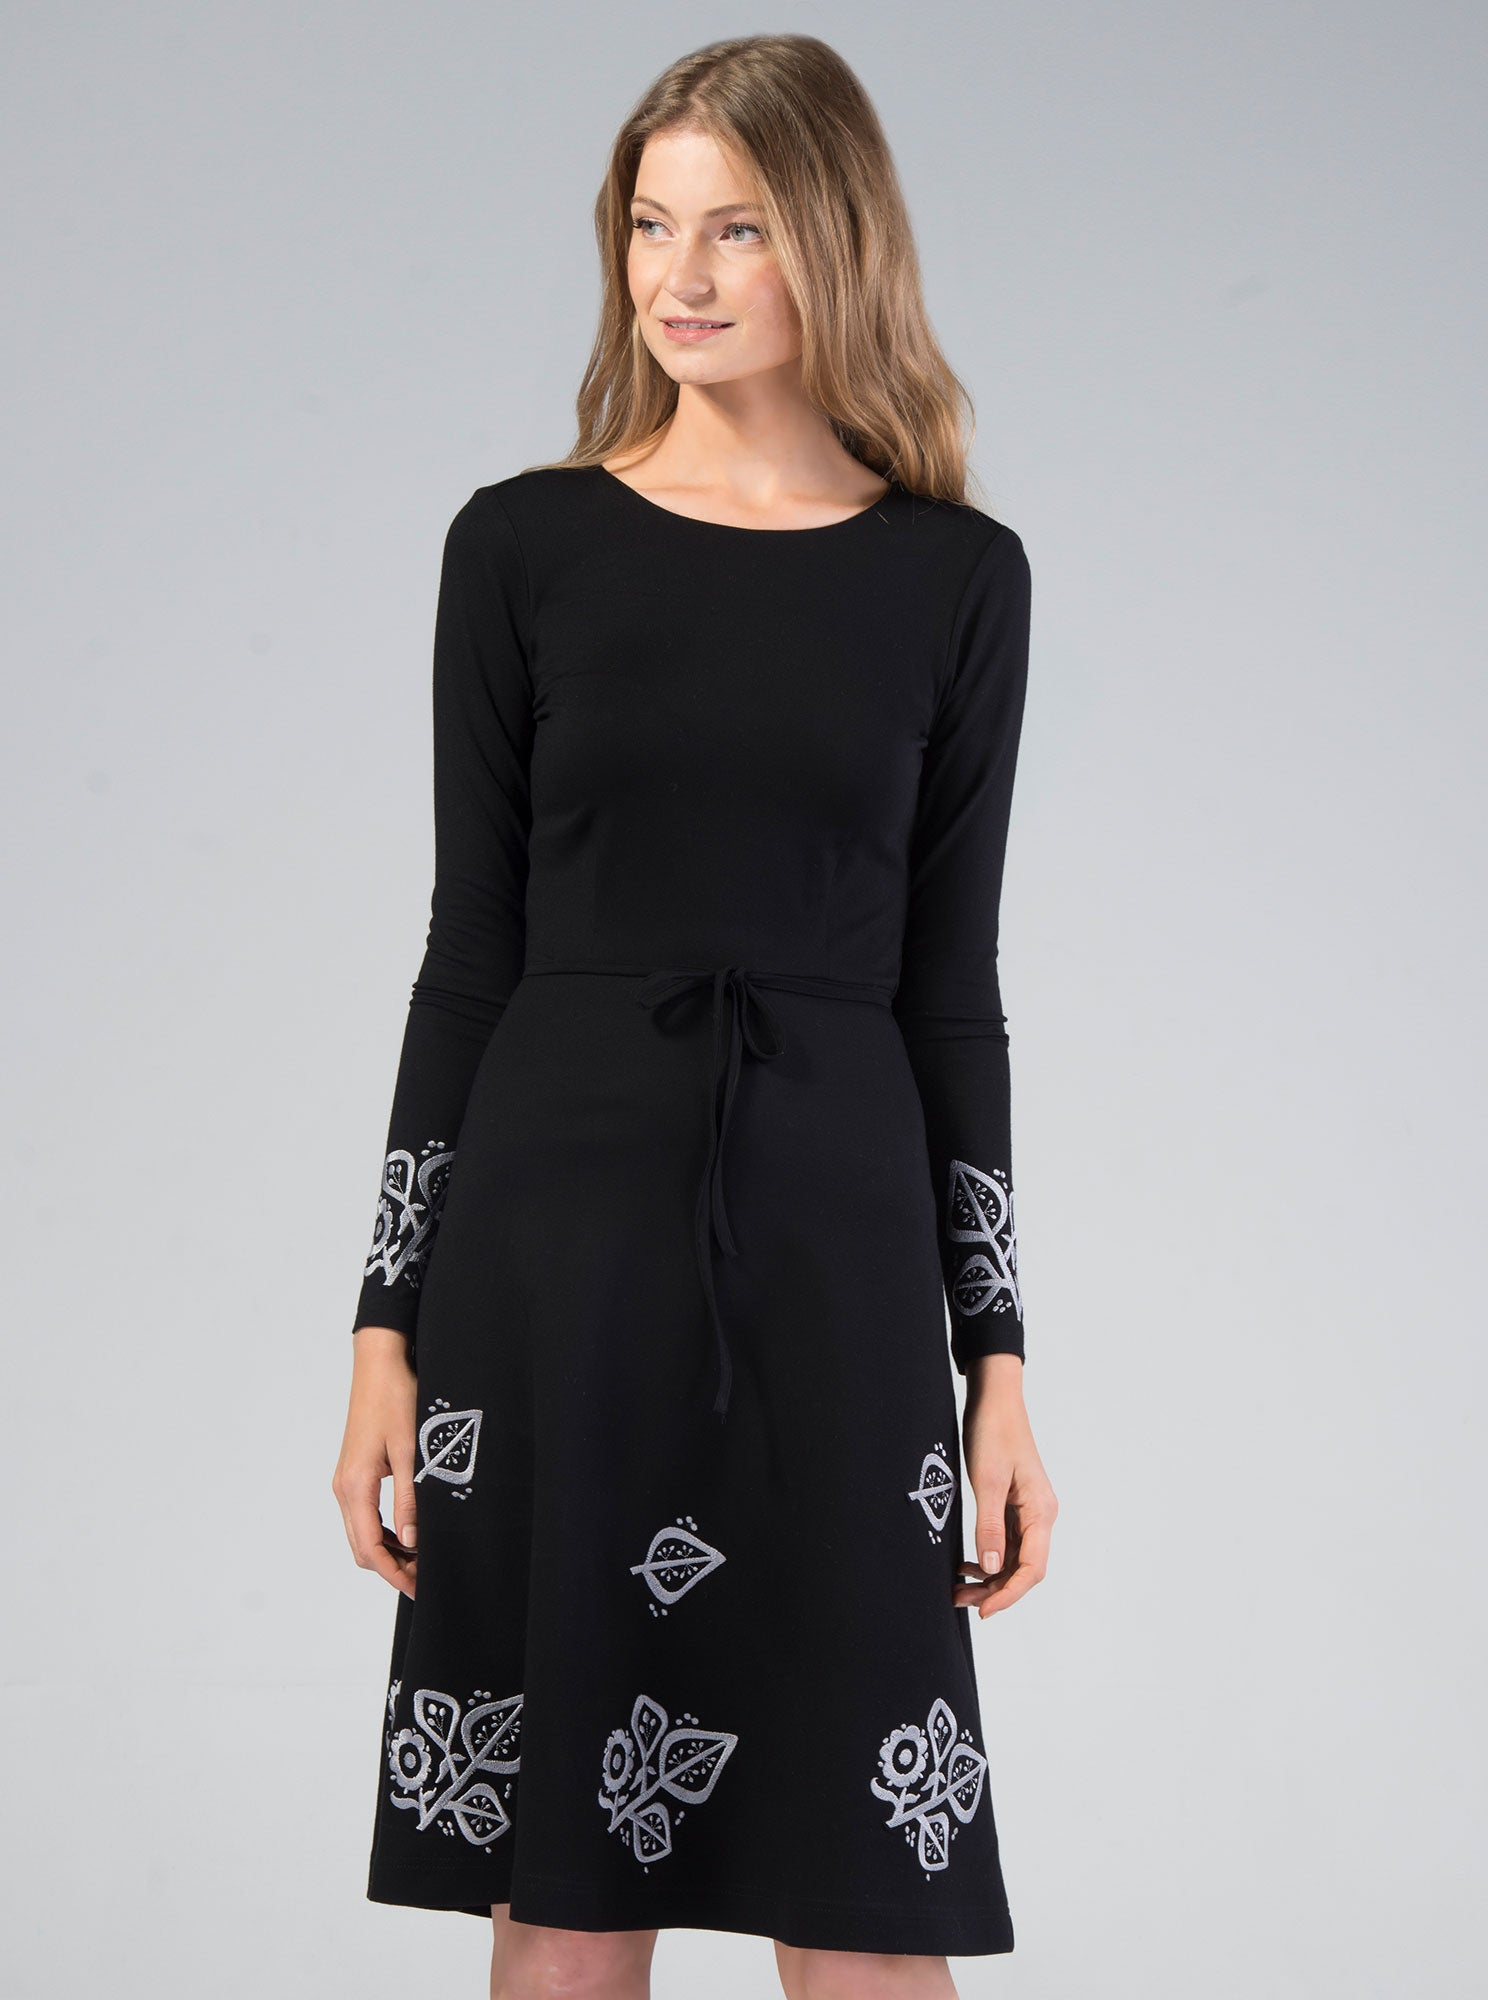 SUSI Bamboo Embroidered Black Dress